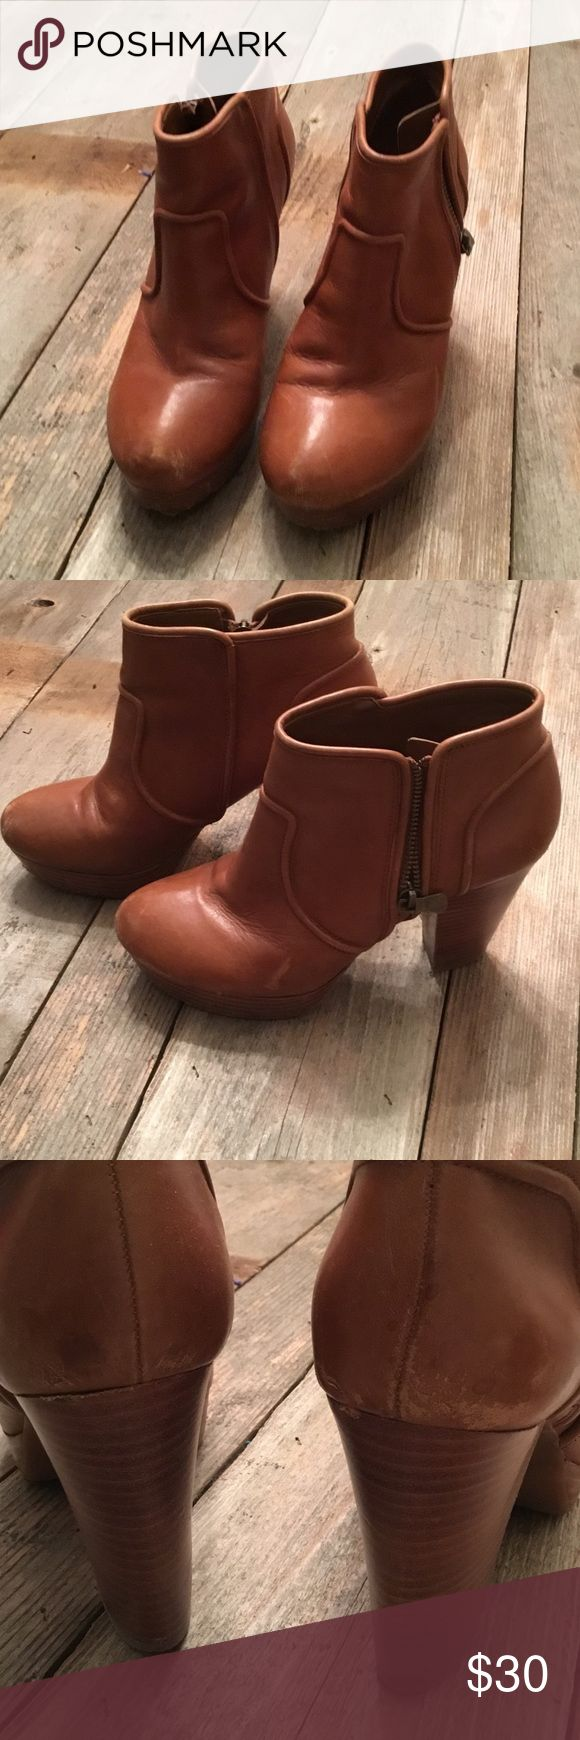 Gianni Bini Booties Gianni Bini booties Size 8. Worn in a little. Still in great condition. Leather. Gianni Bini Shoes Ankle Boots & Booties